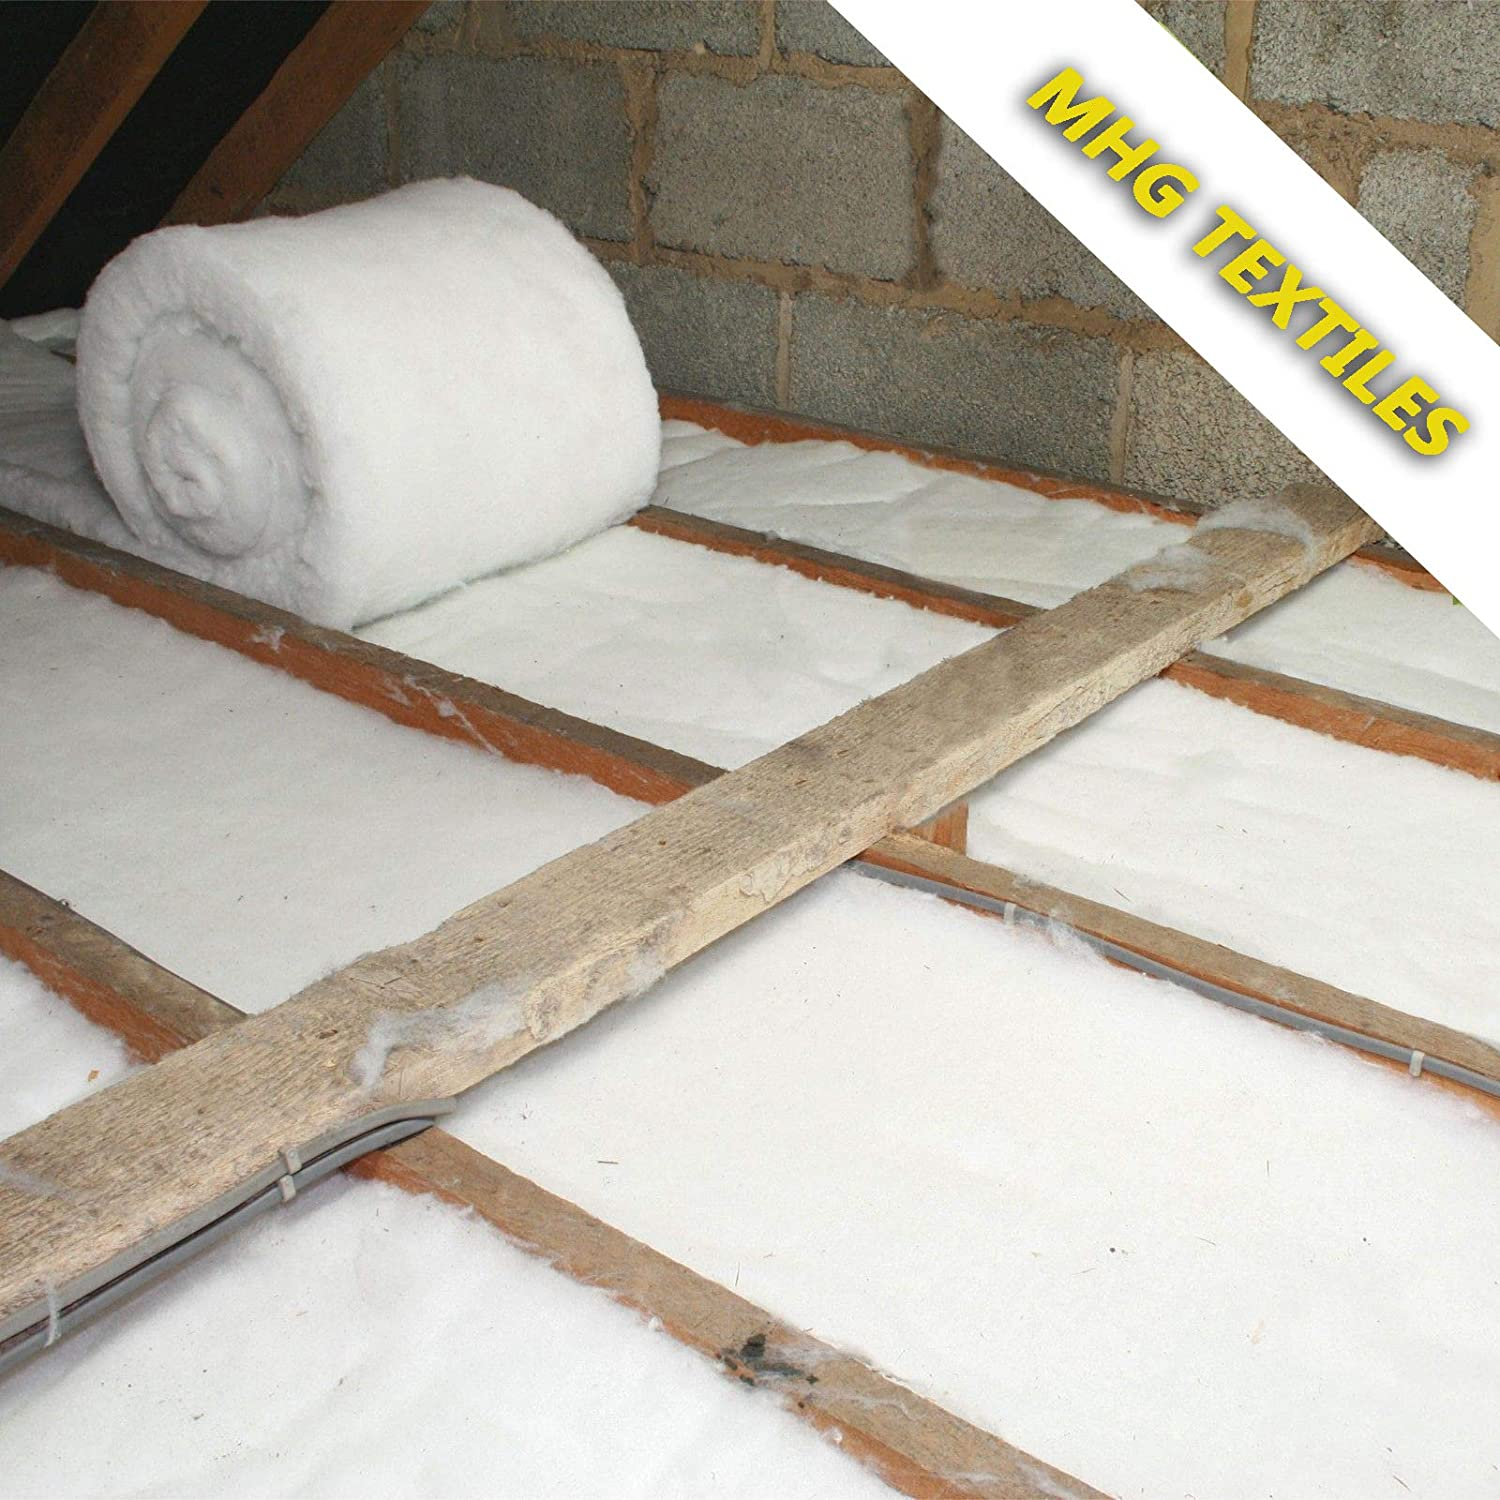 Itch Free Loft Thermal Construction Insulation Roll – 8 Metre x W370 mm x T110mm MHG Textiles